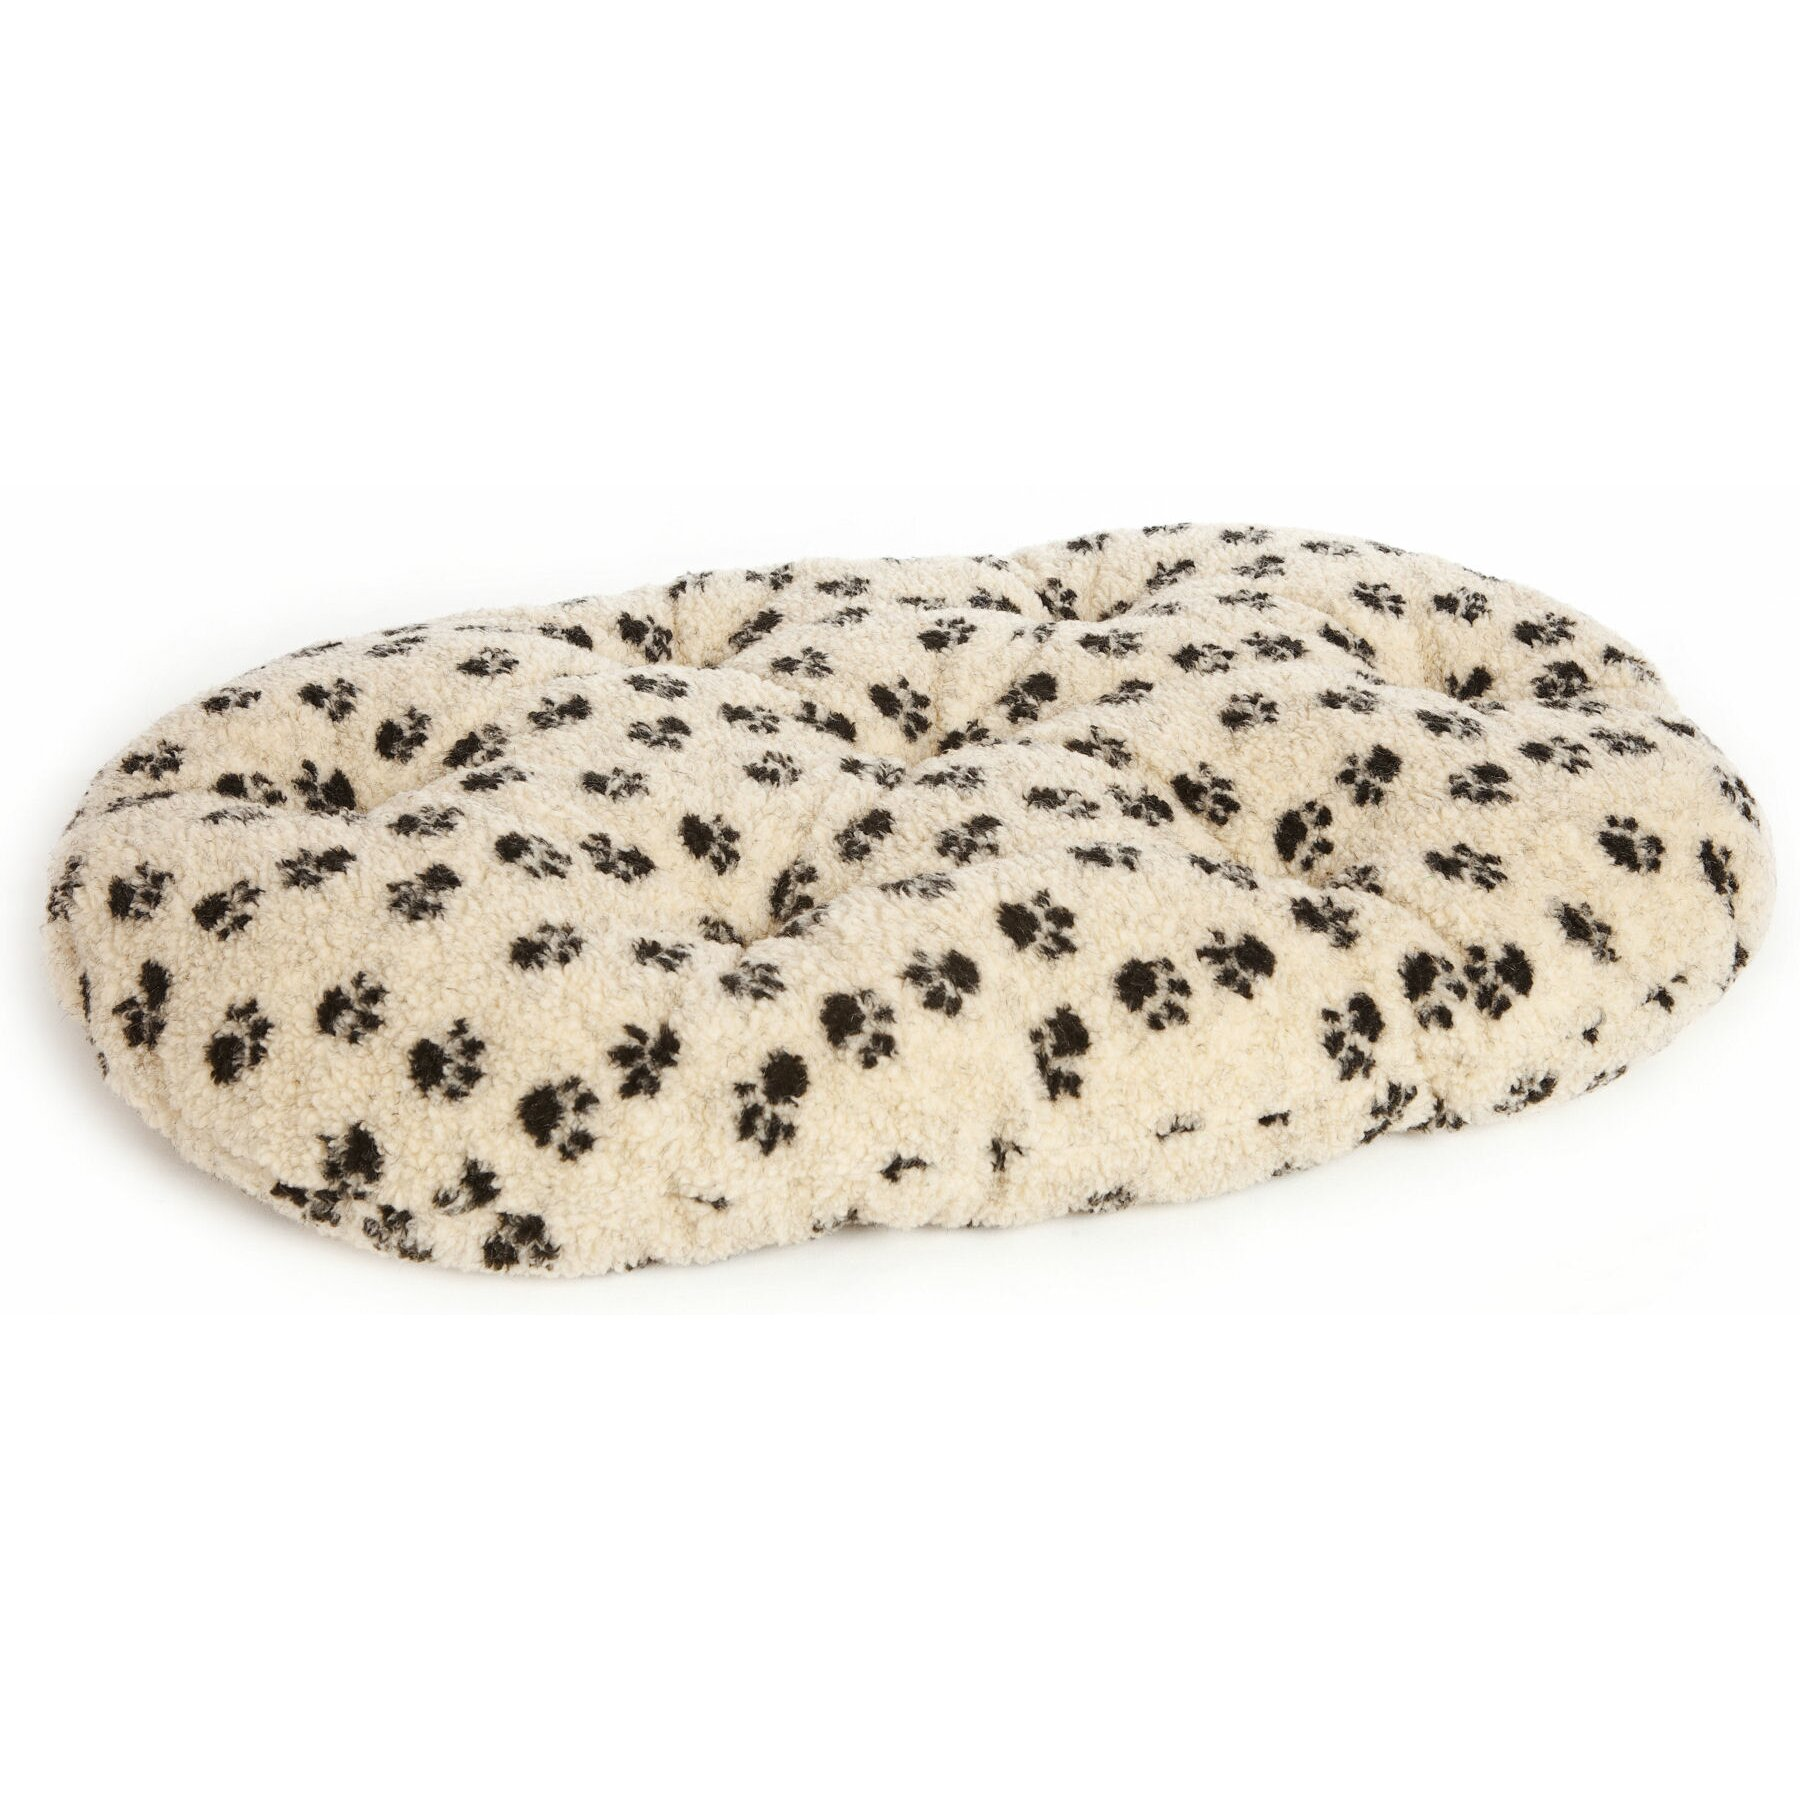 P Amp L Superior Pet Beds Machine Washable Oval Sherpa